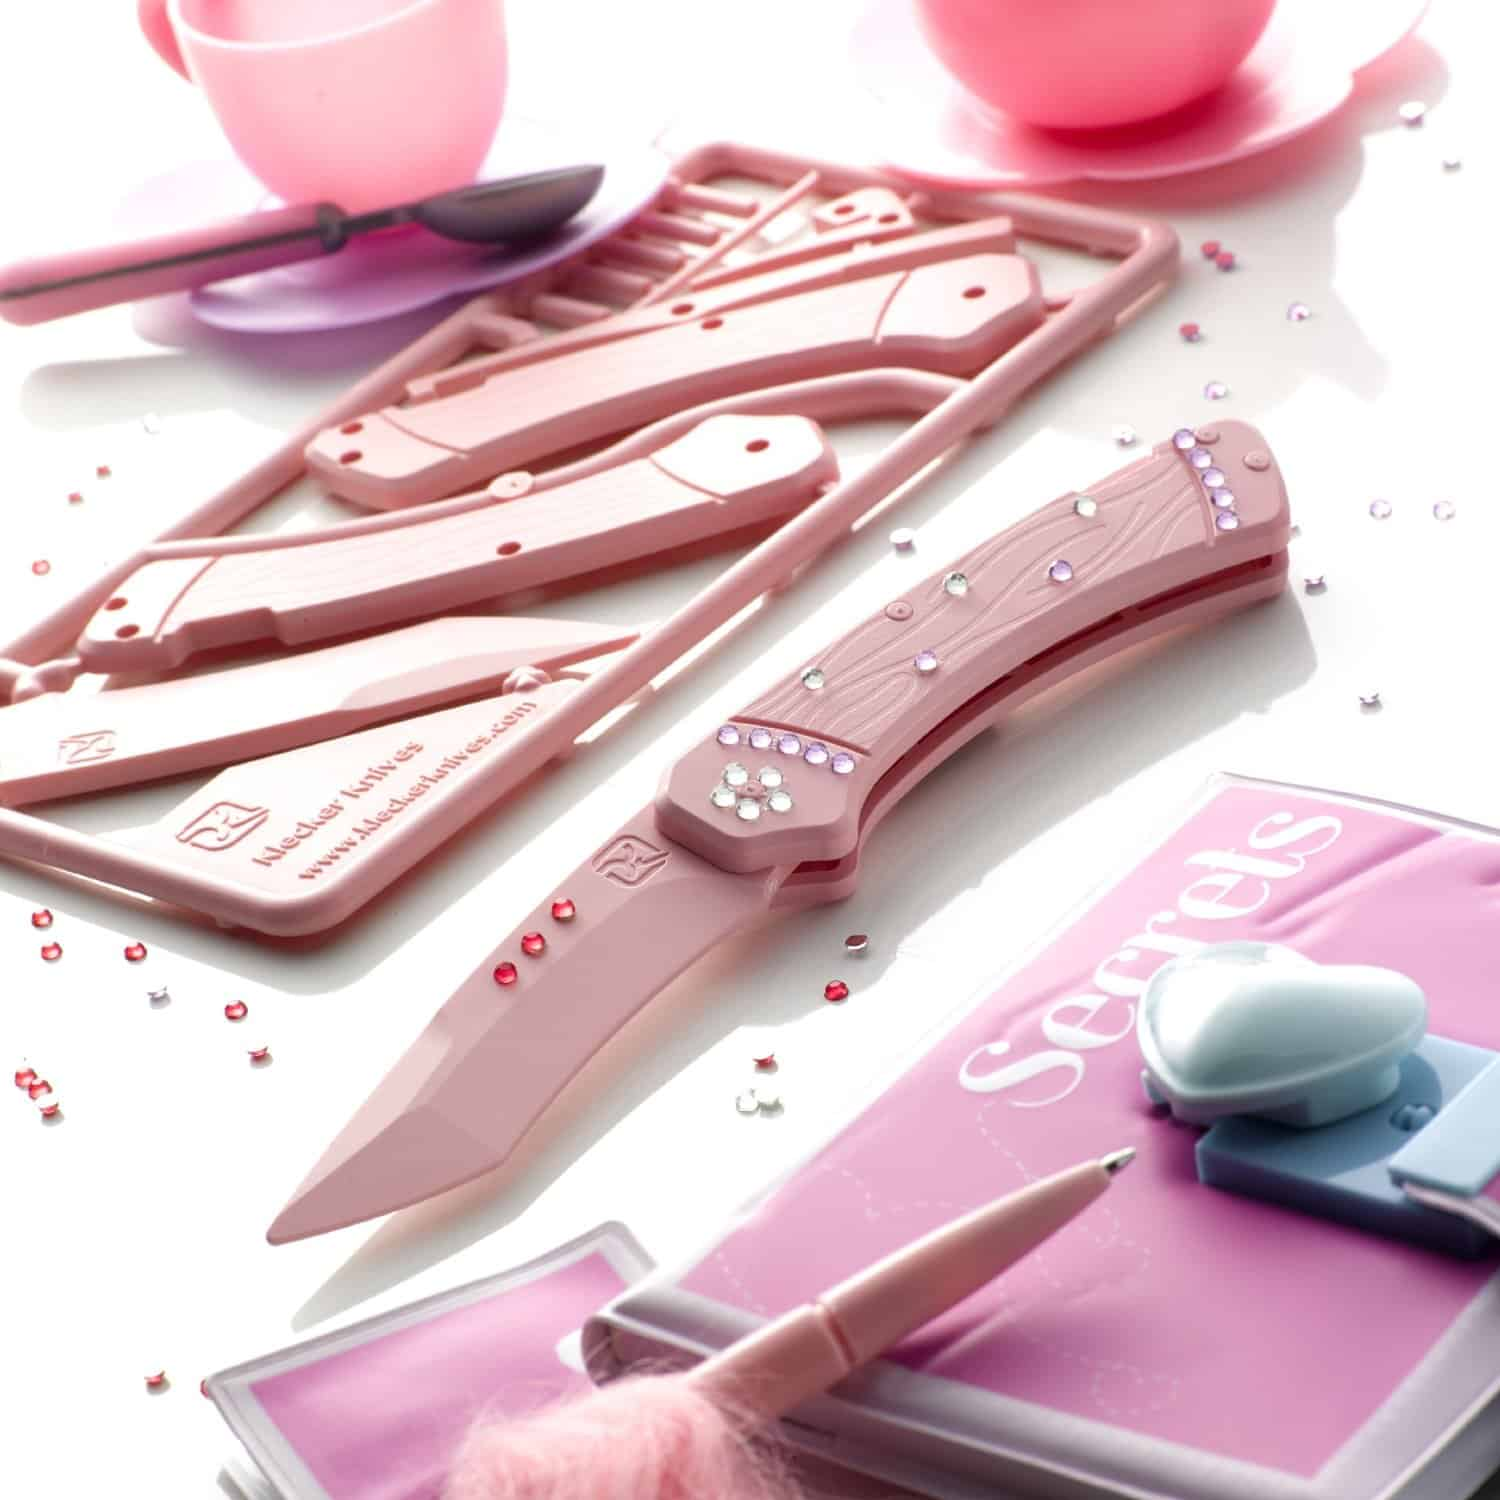 DIY Trigger Knife Kit Pink Teach Kids About Knives